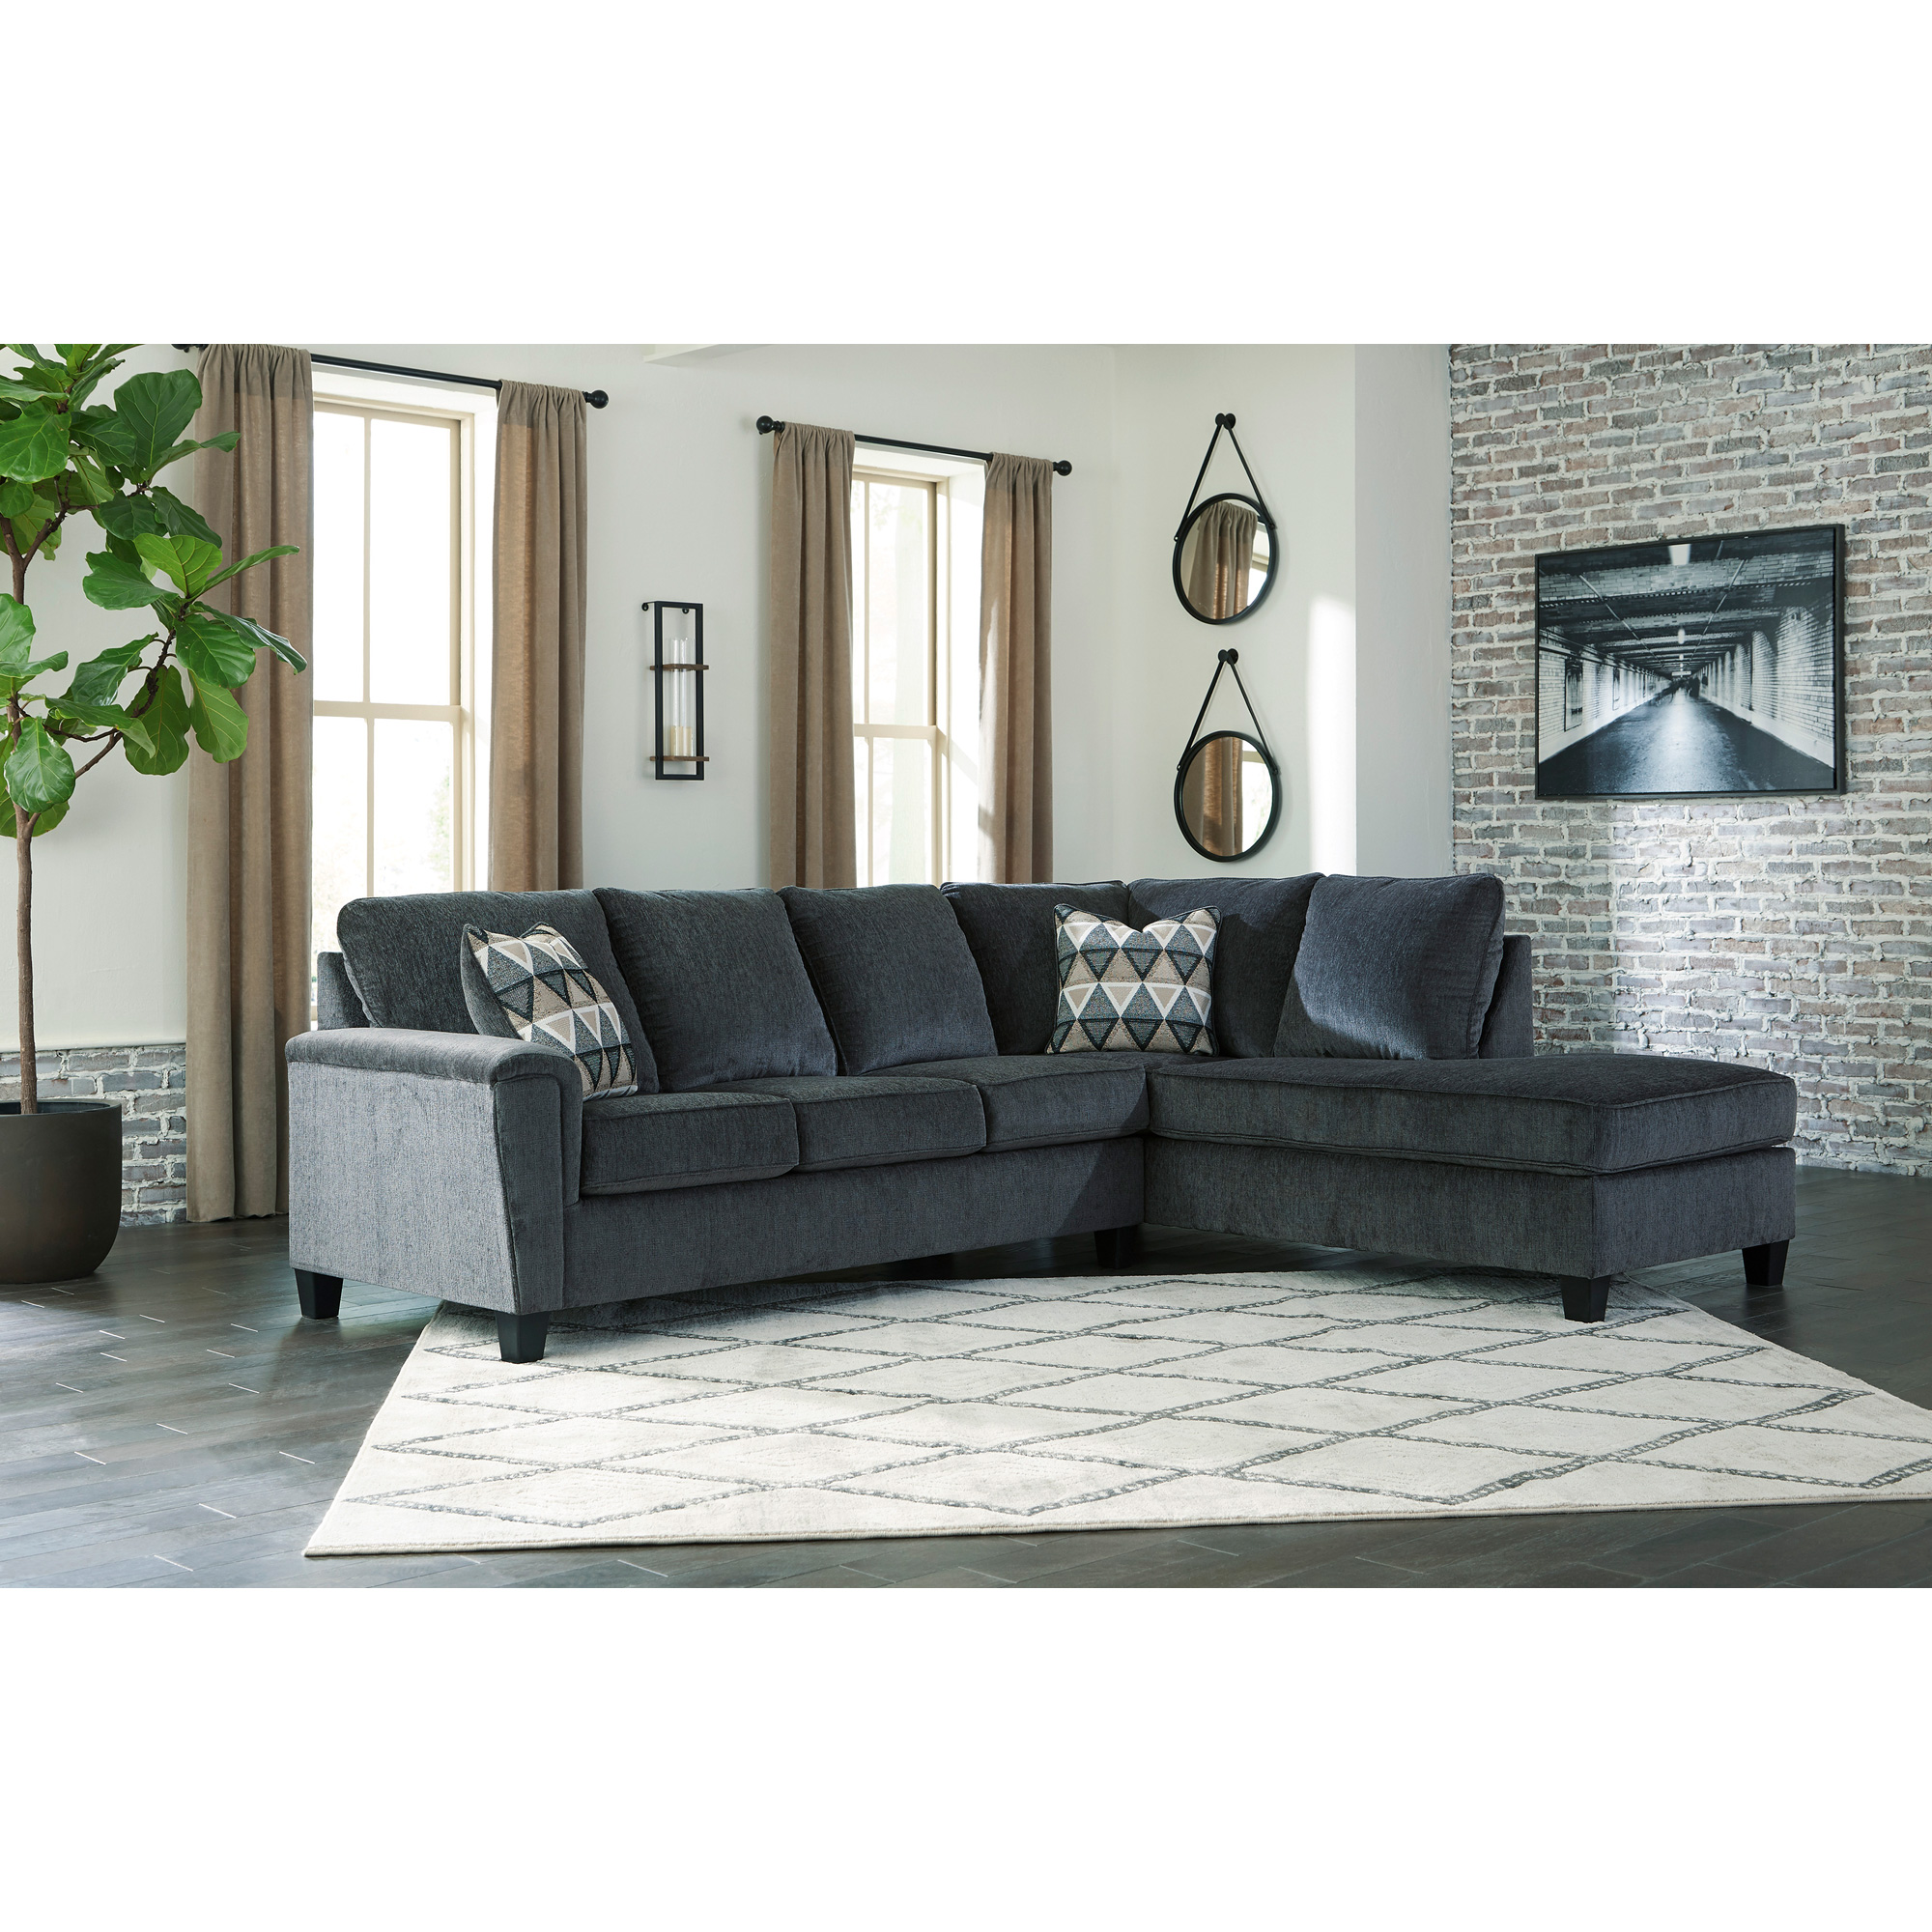 Ashley Furniture | Abinger Smoke Right Chaise Sectional Sofa